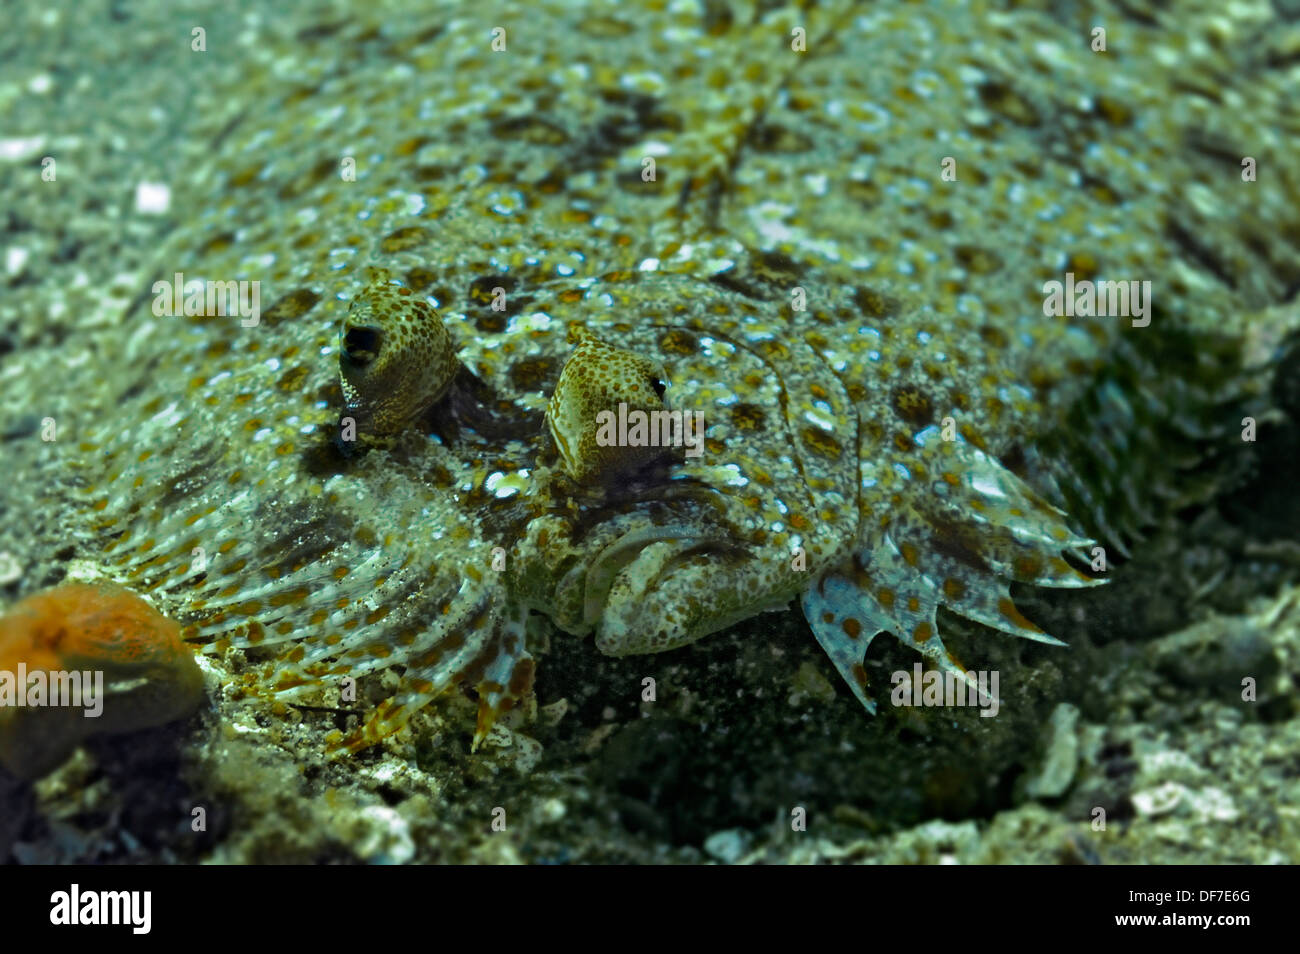 Wide-eyed Flounder (Bothus podas), Raja Ampat, West Papua, Indonesia - Stock Image